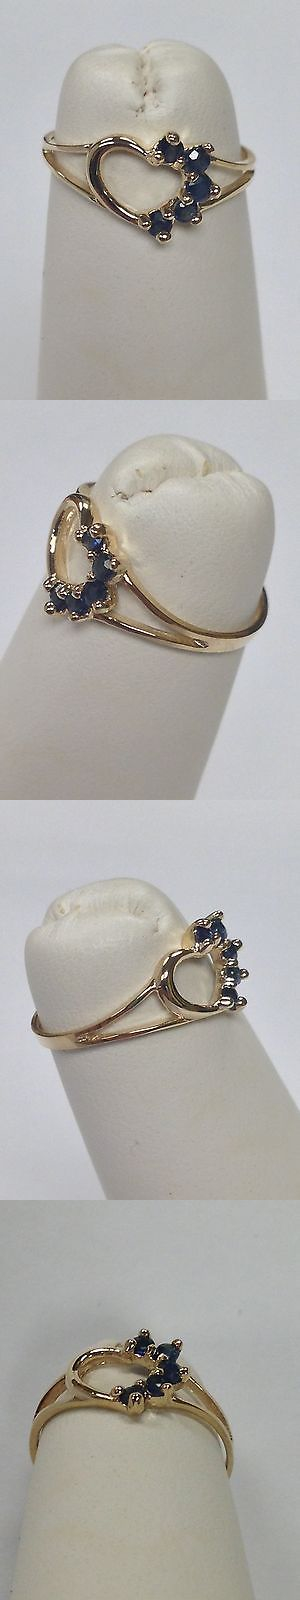 Rings 98477: Natural Sapphire Heart Ring For Children 10Kt Yellow Gold -> BUY IT NOW ONLY: $60 on eBay!